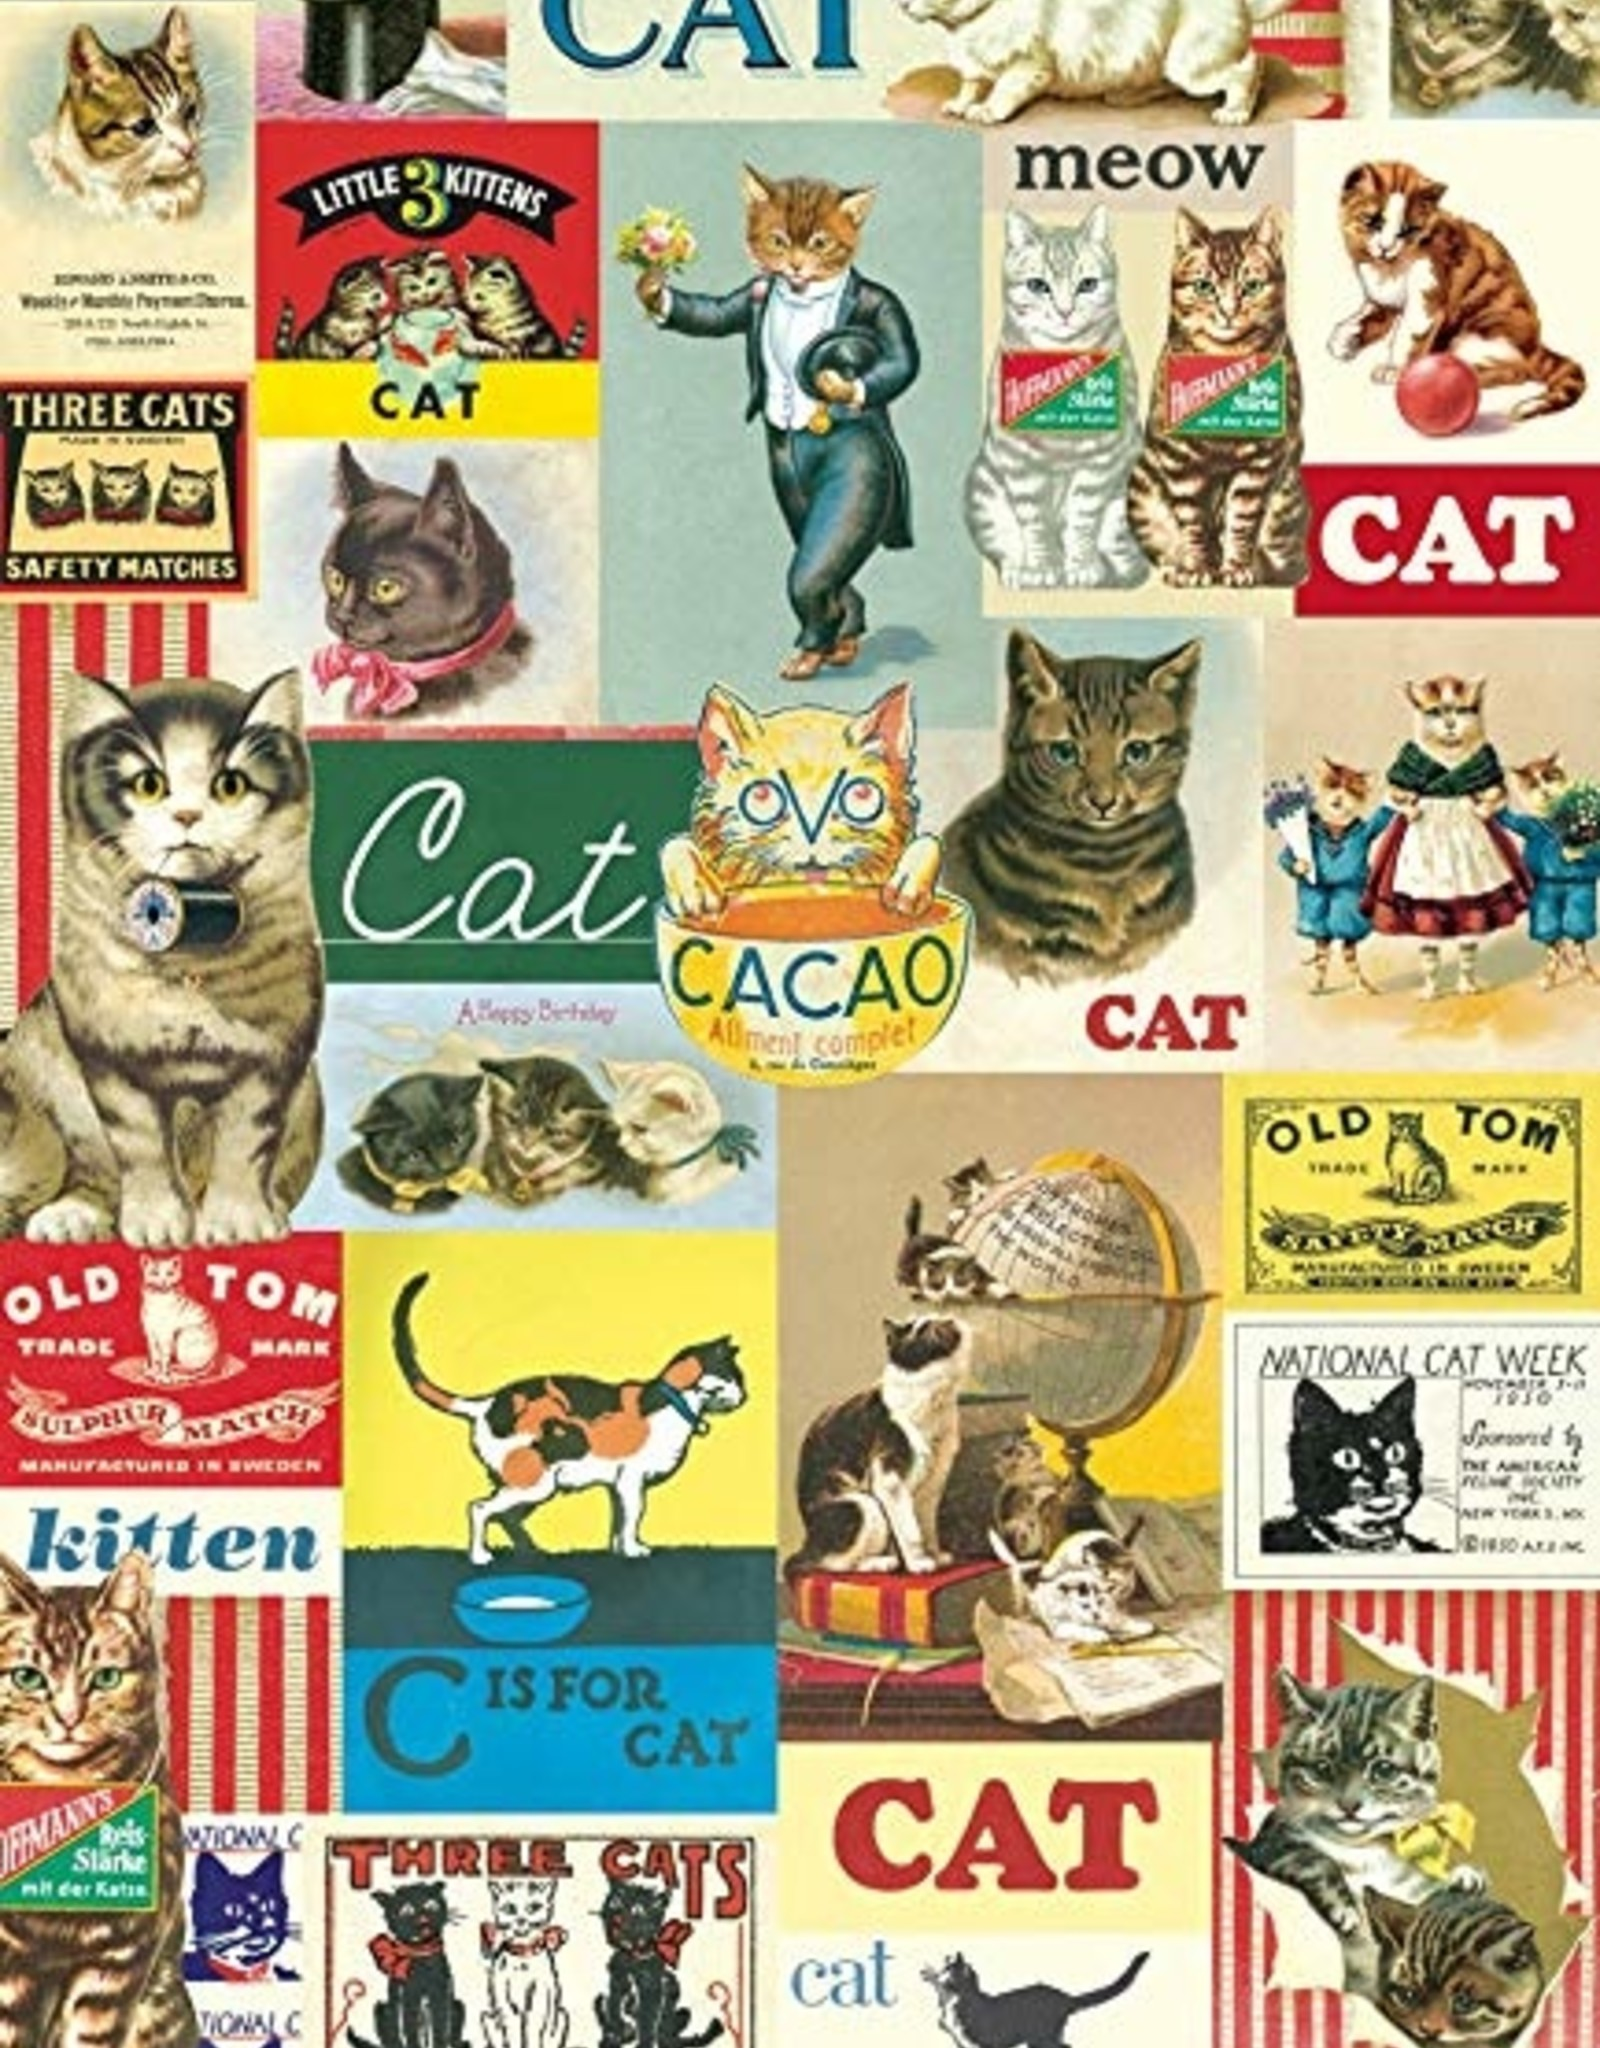 Cavallini Papers Cavallini Papers poster - cat collage C is for cat